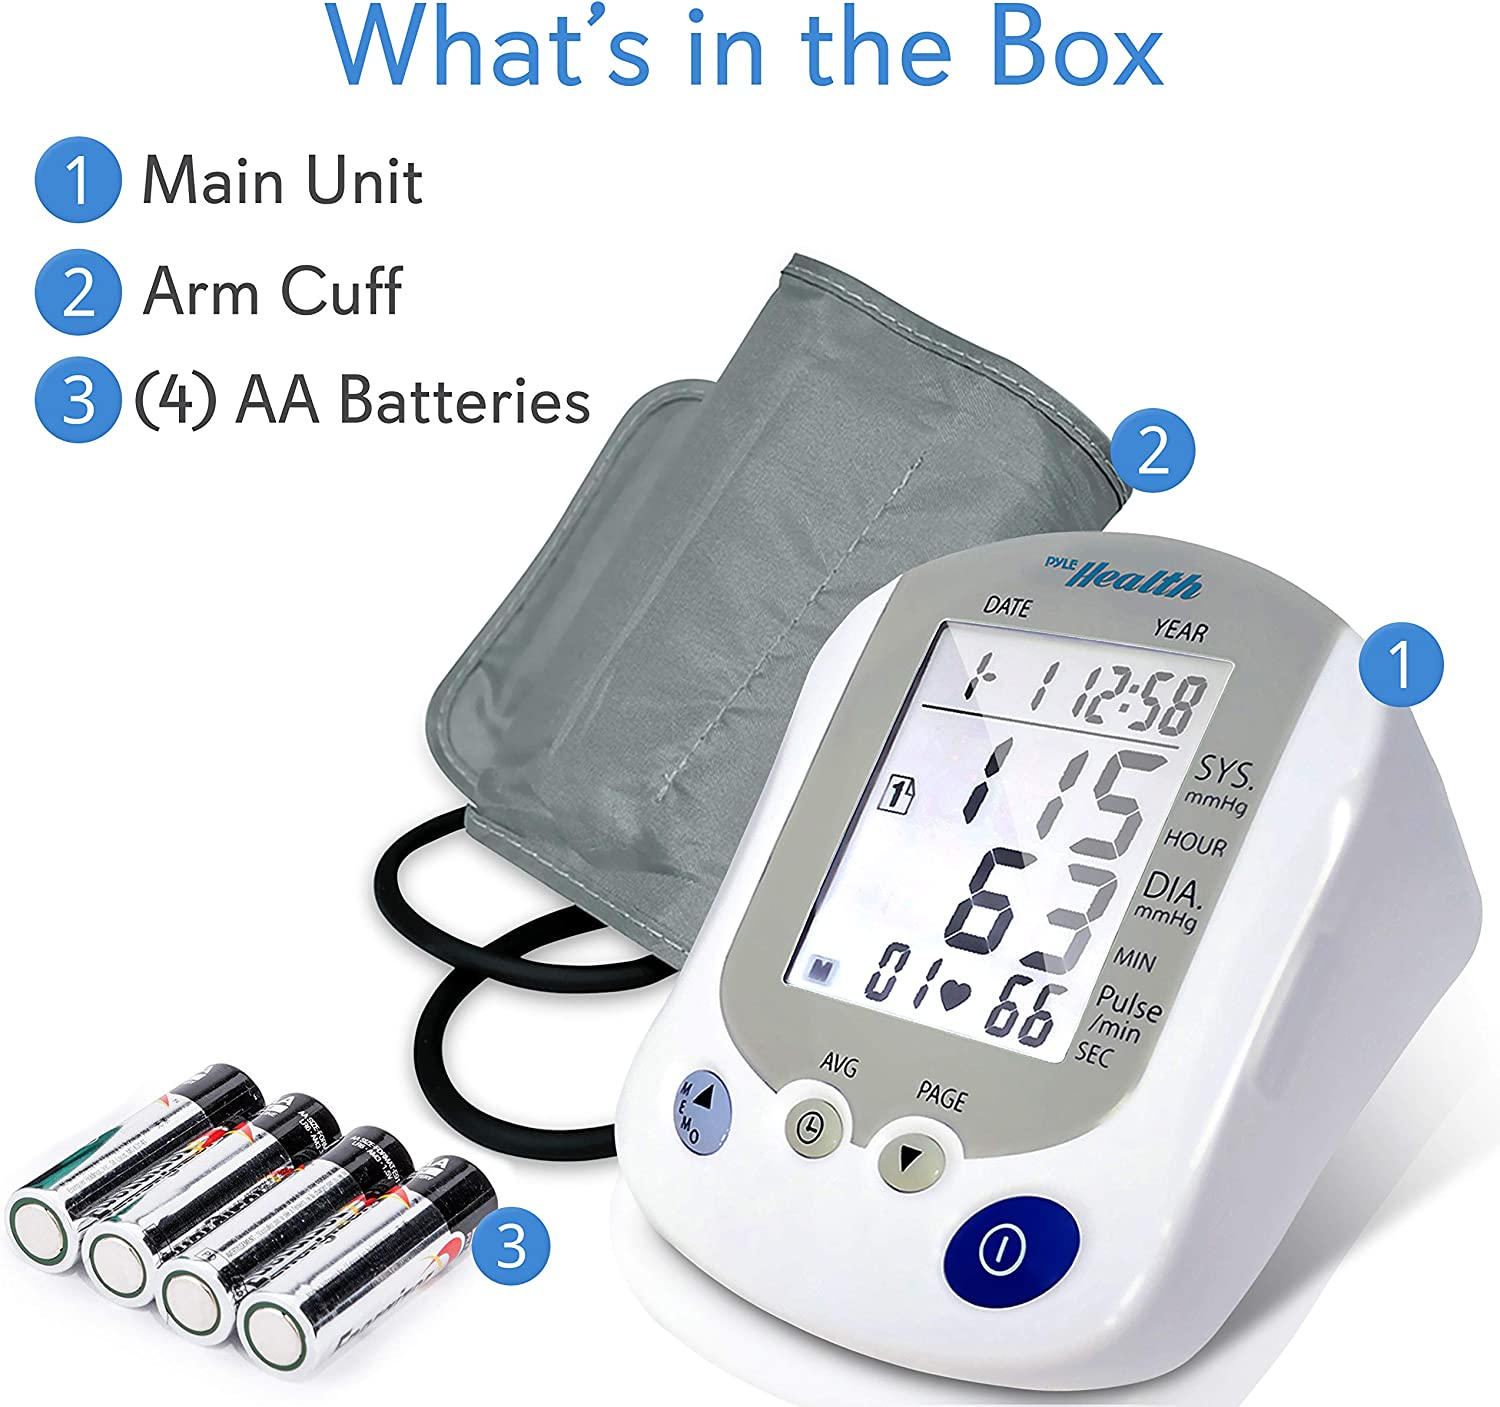 Digital Blood Pressure Monitor - Portable Automatic Pulse Rate Systolic Diastolic BP Tracker Machine- Standard Cuff Fits Large, Any Size Upper Arm